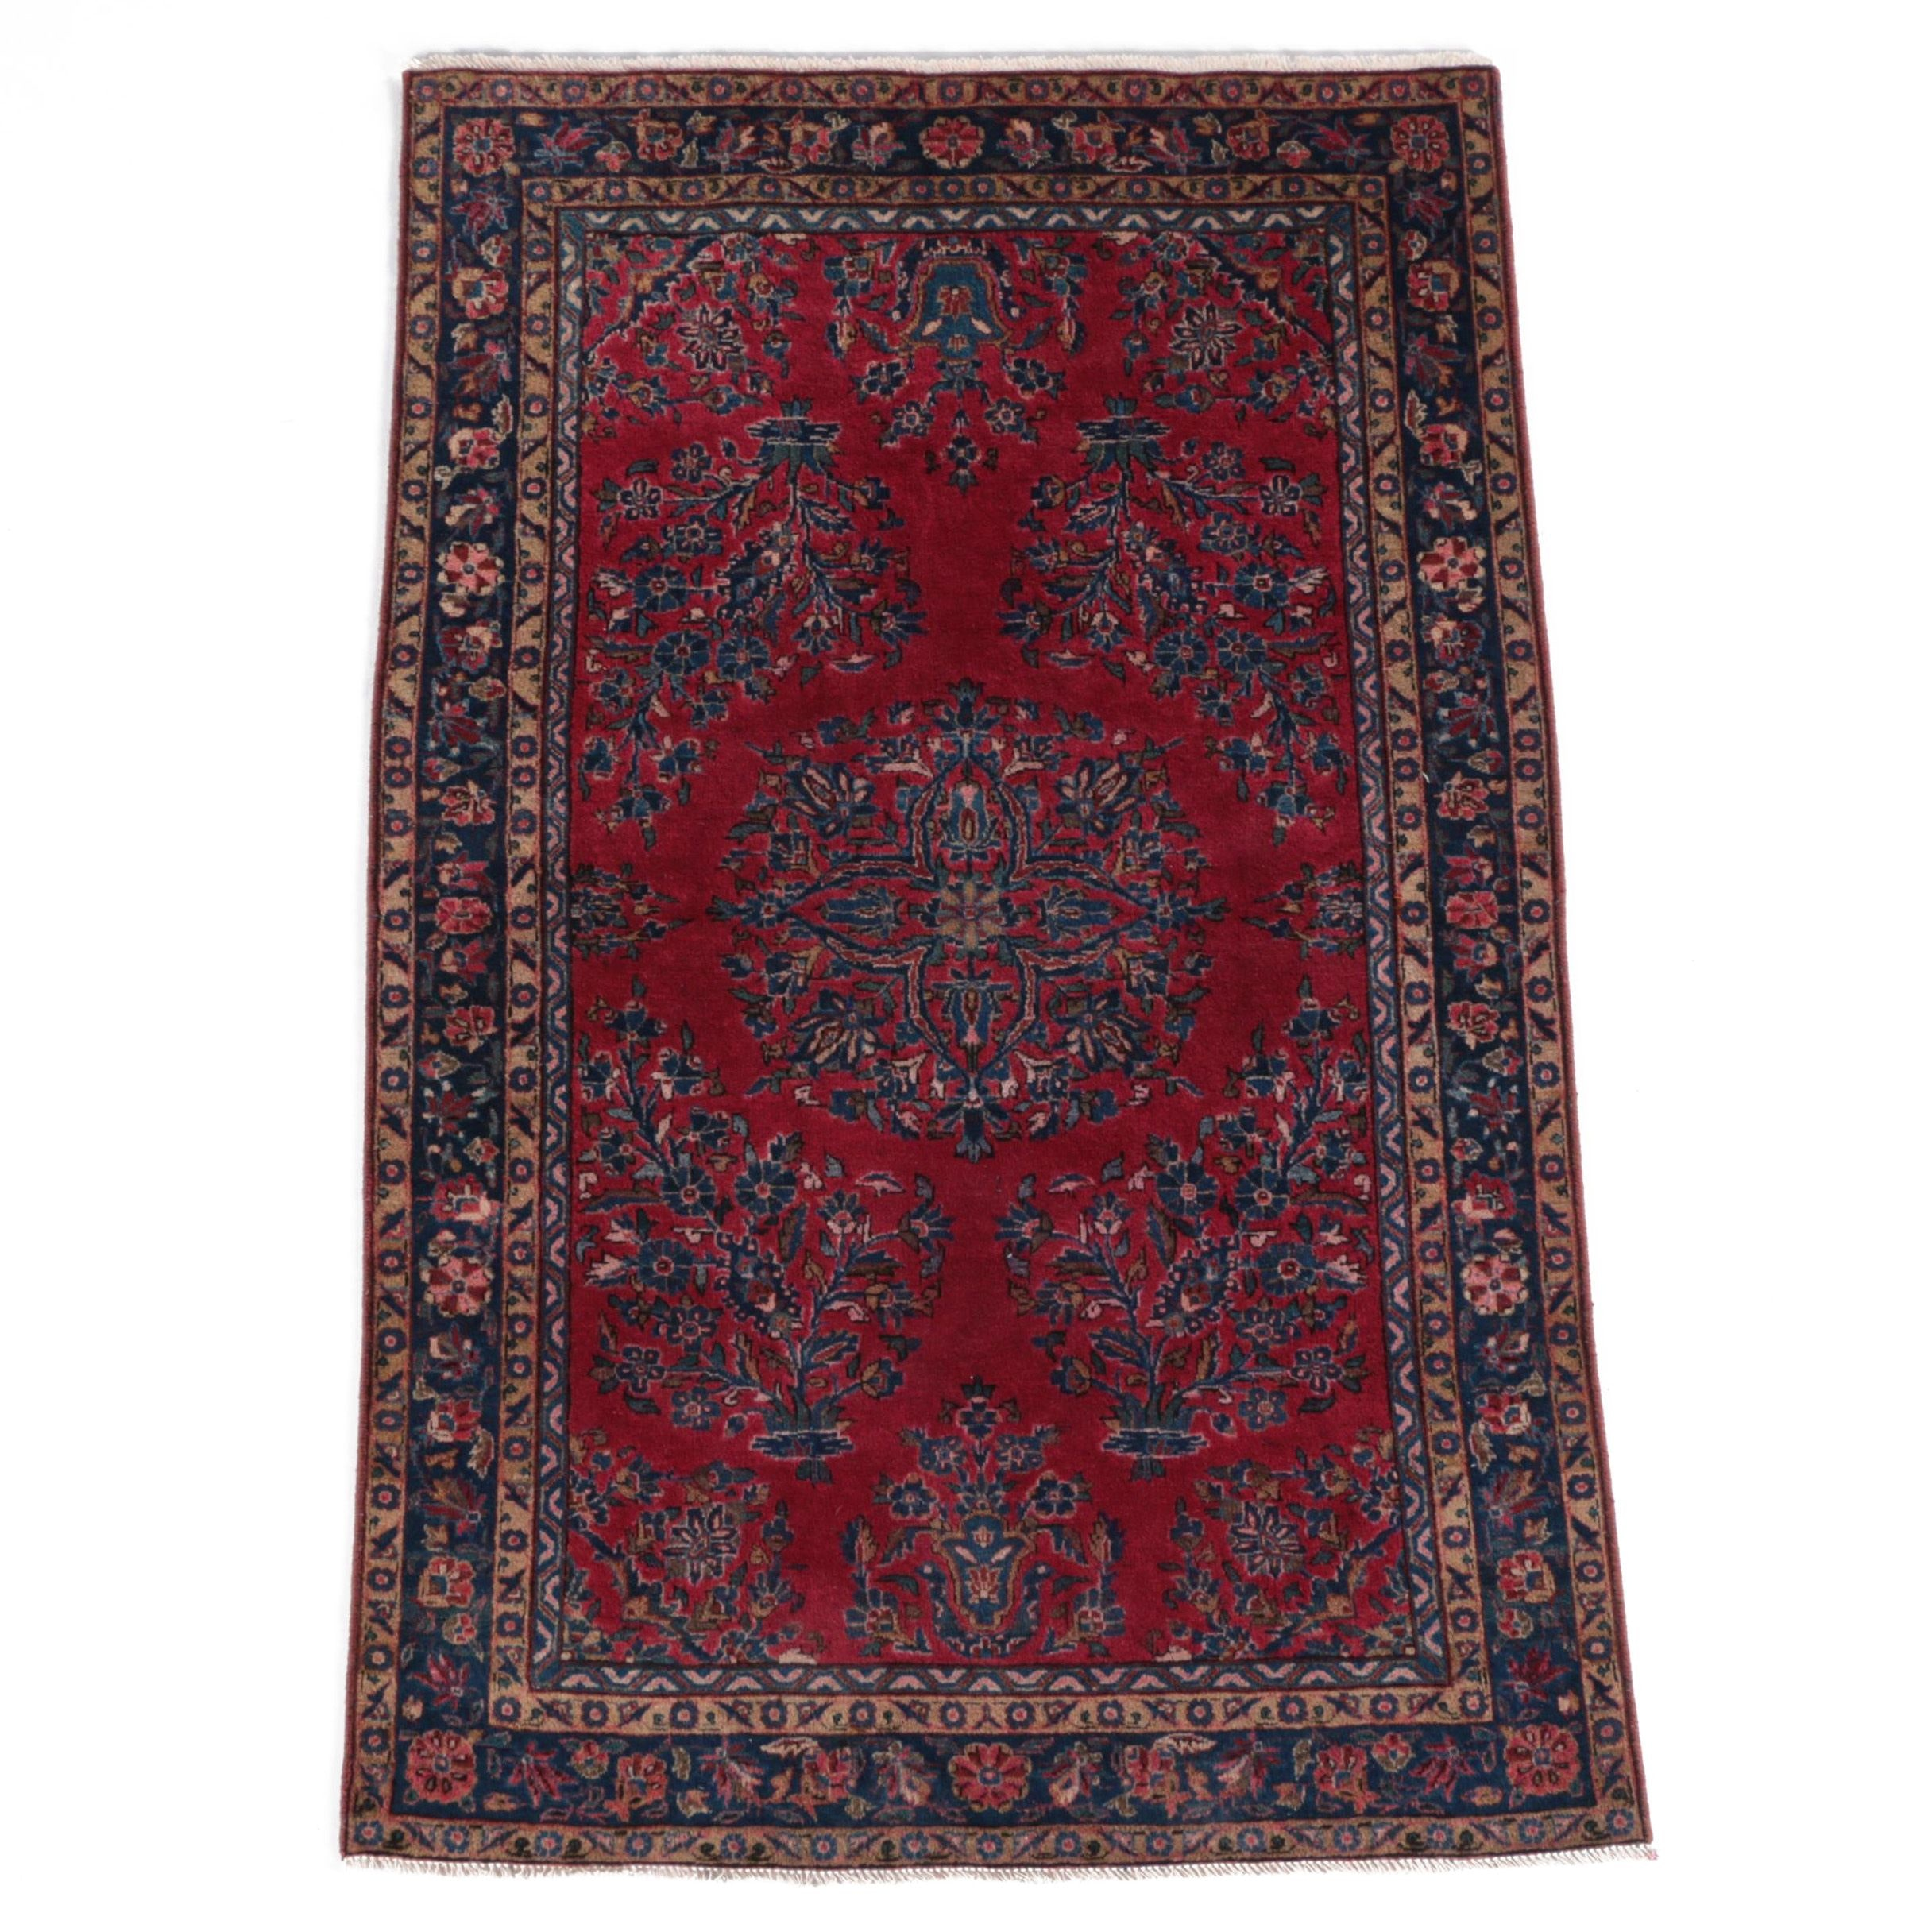 Antique Hand-Knotted Persian Sarouk Area Rug